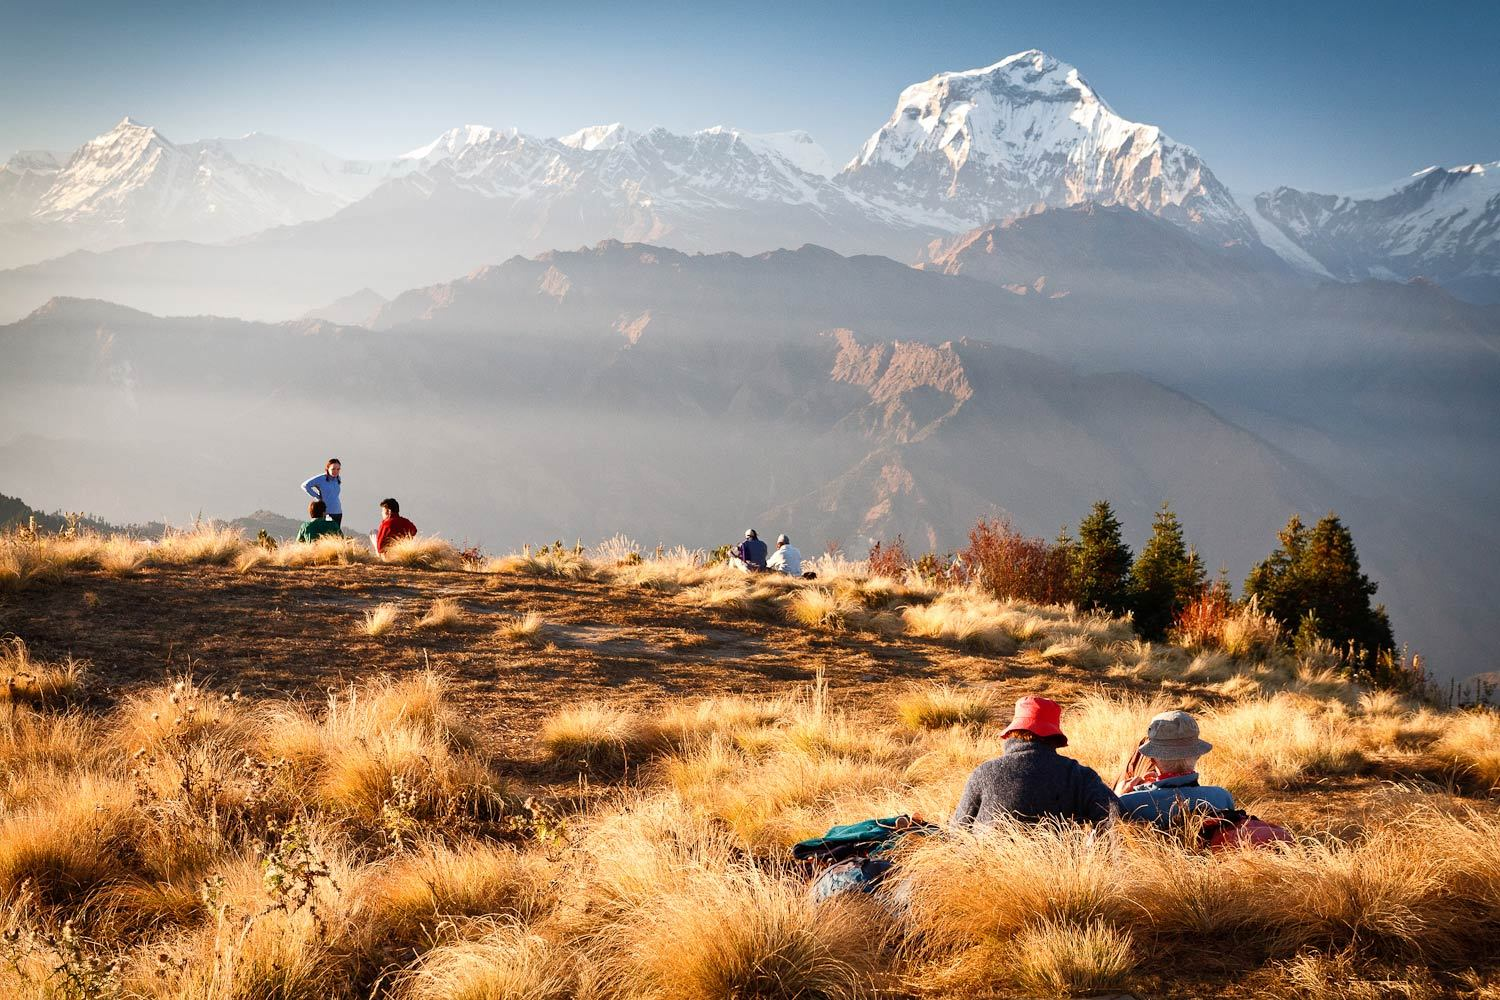 Poon Hill - Great beginner multi-day high altitude trek in Nepal.Trail Type: Loop TrailTime: 3 daysTerrain: Well defined paths, stairs, suspension bridgesSuitable For: Fit beginners